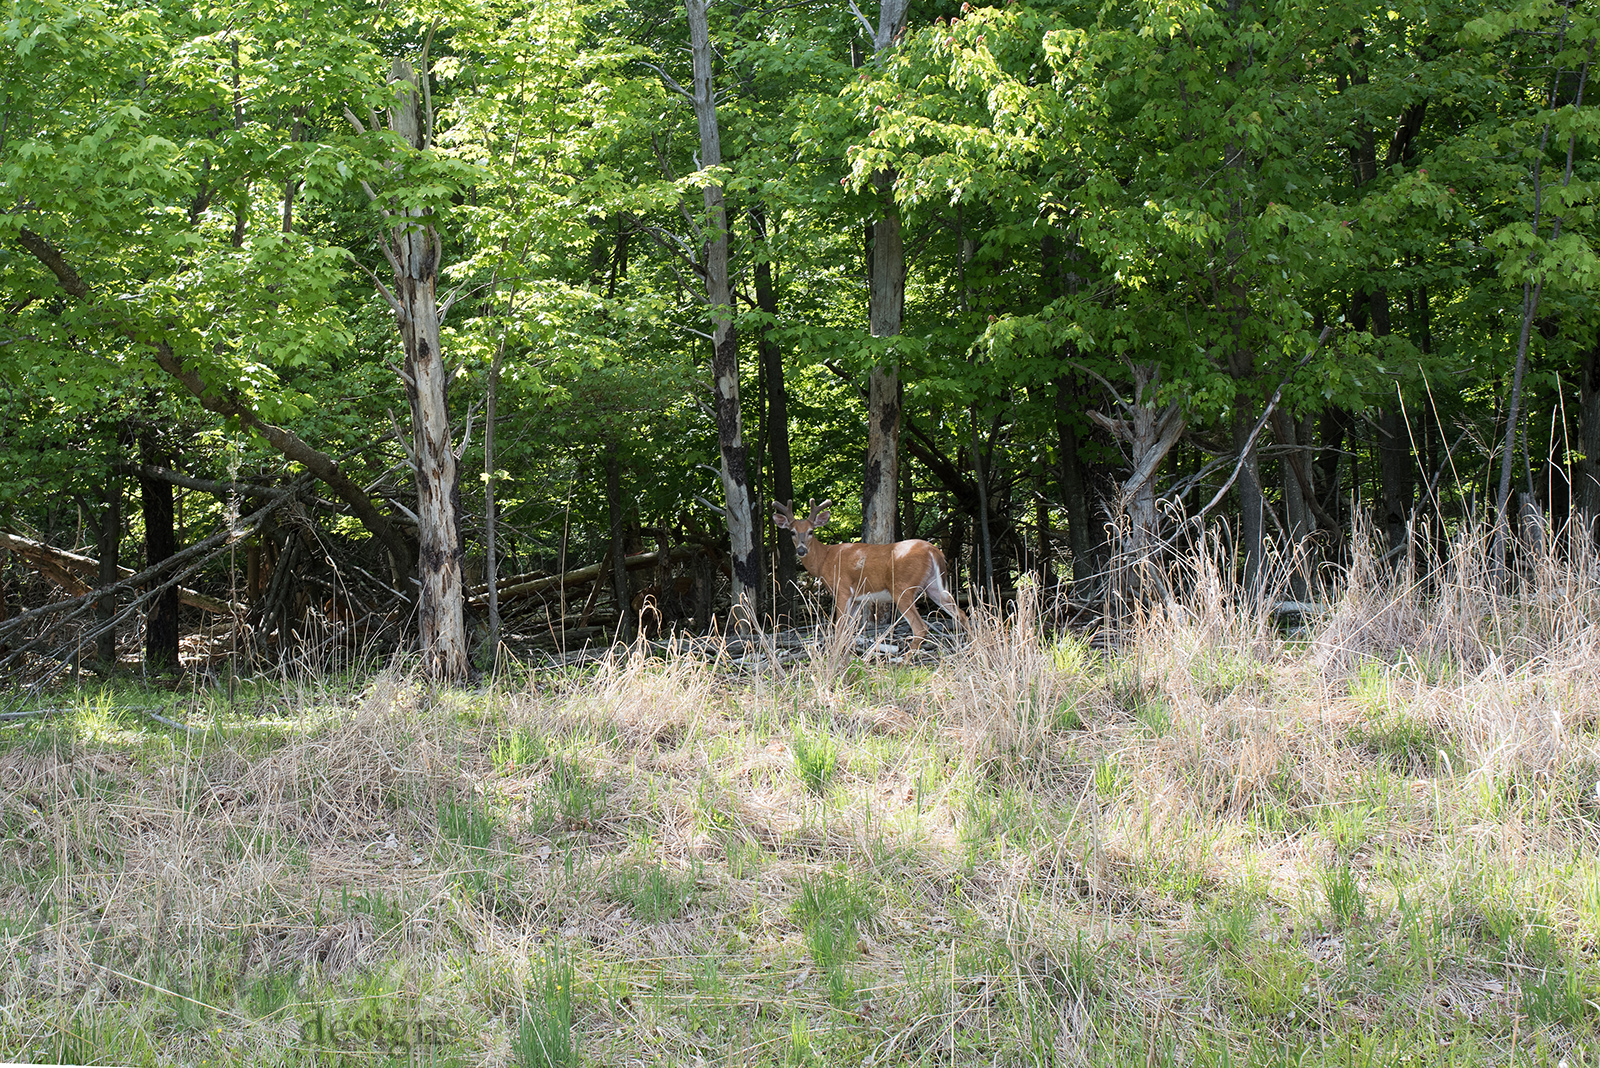 This is with my 50 mm lens! This buck was just begging for a photo.